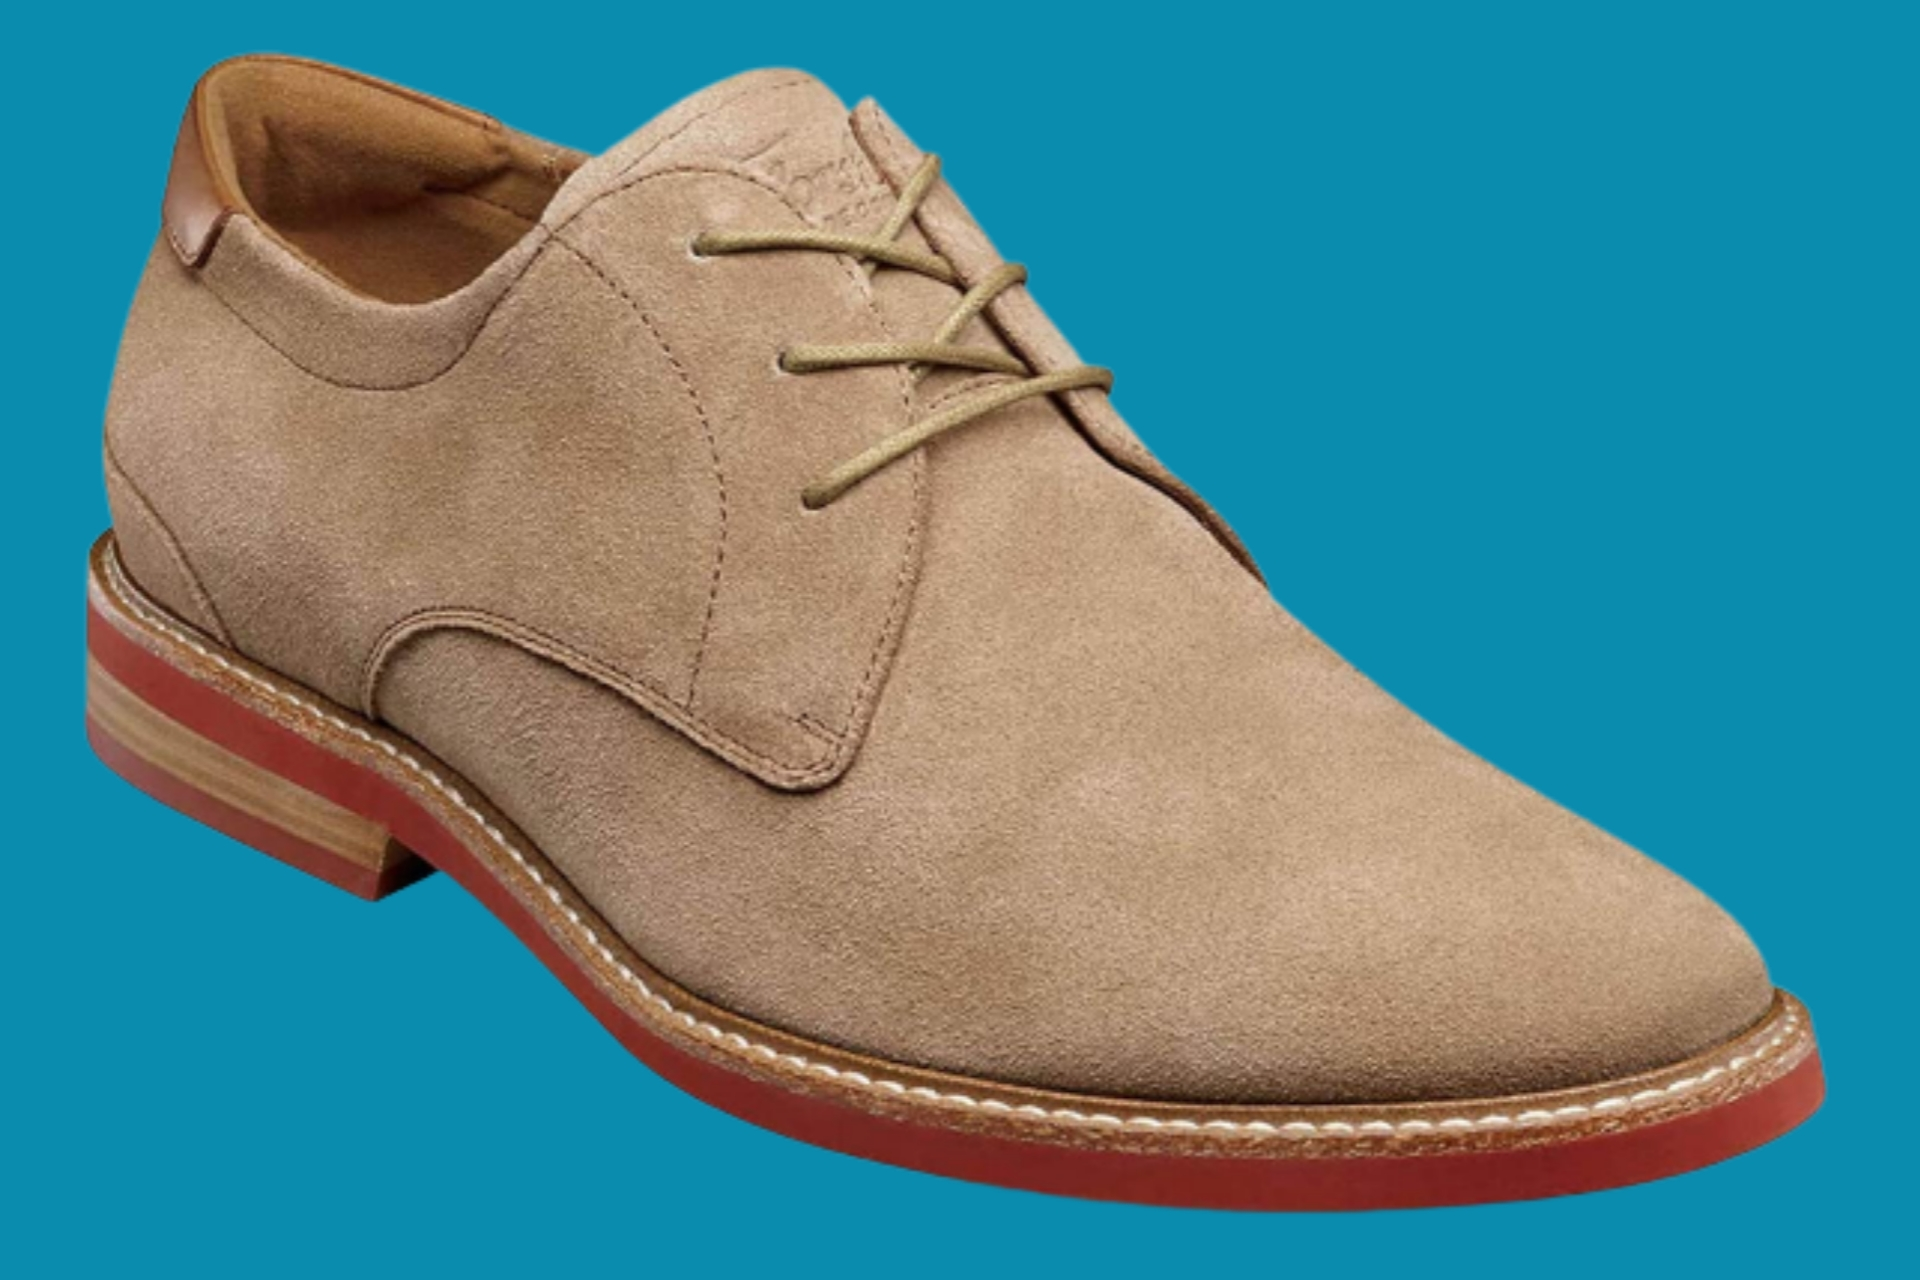 Men's Florsheim suede shoes